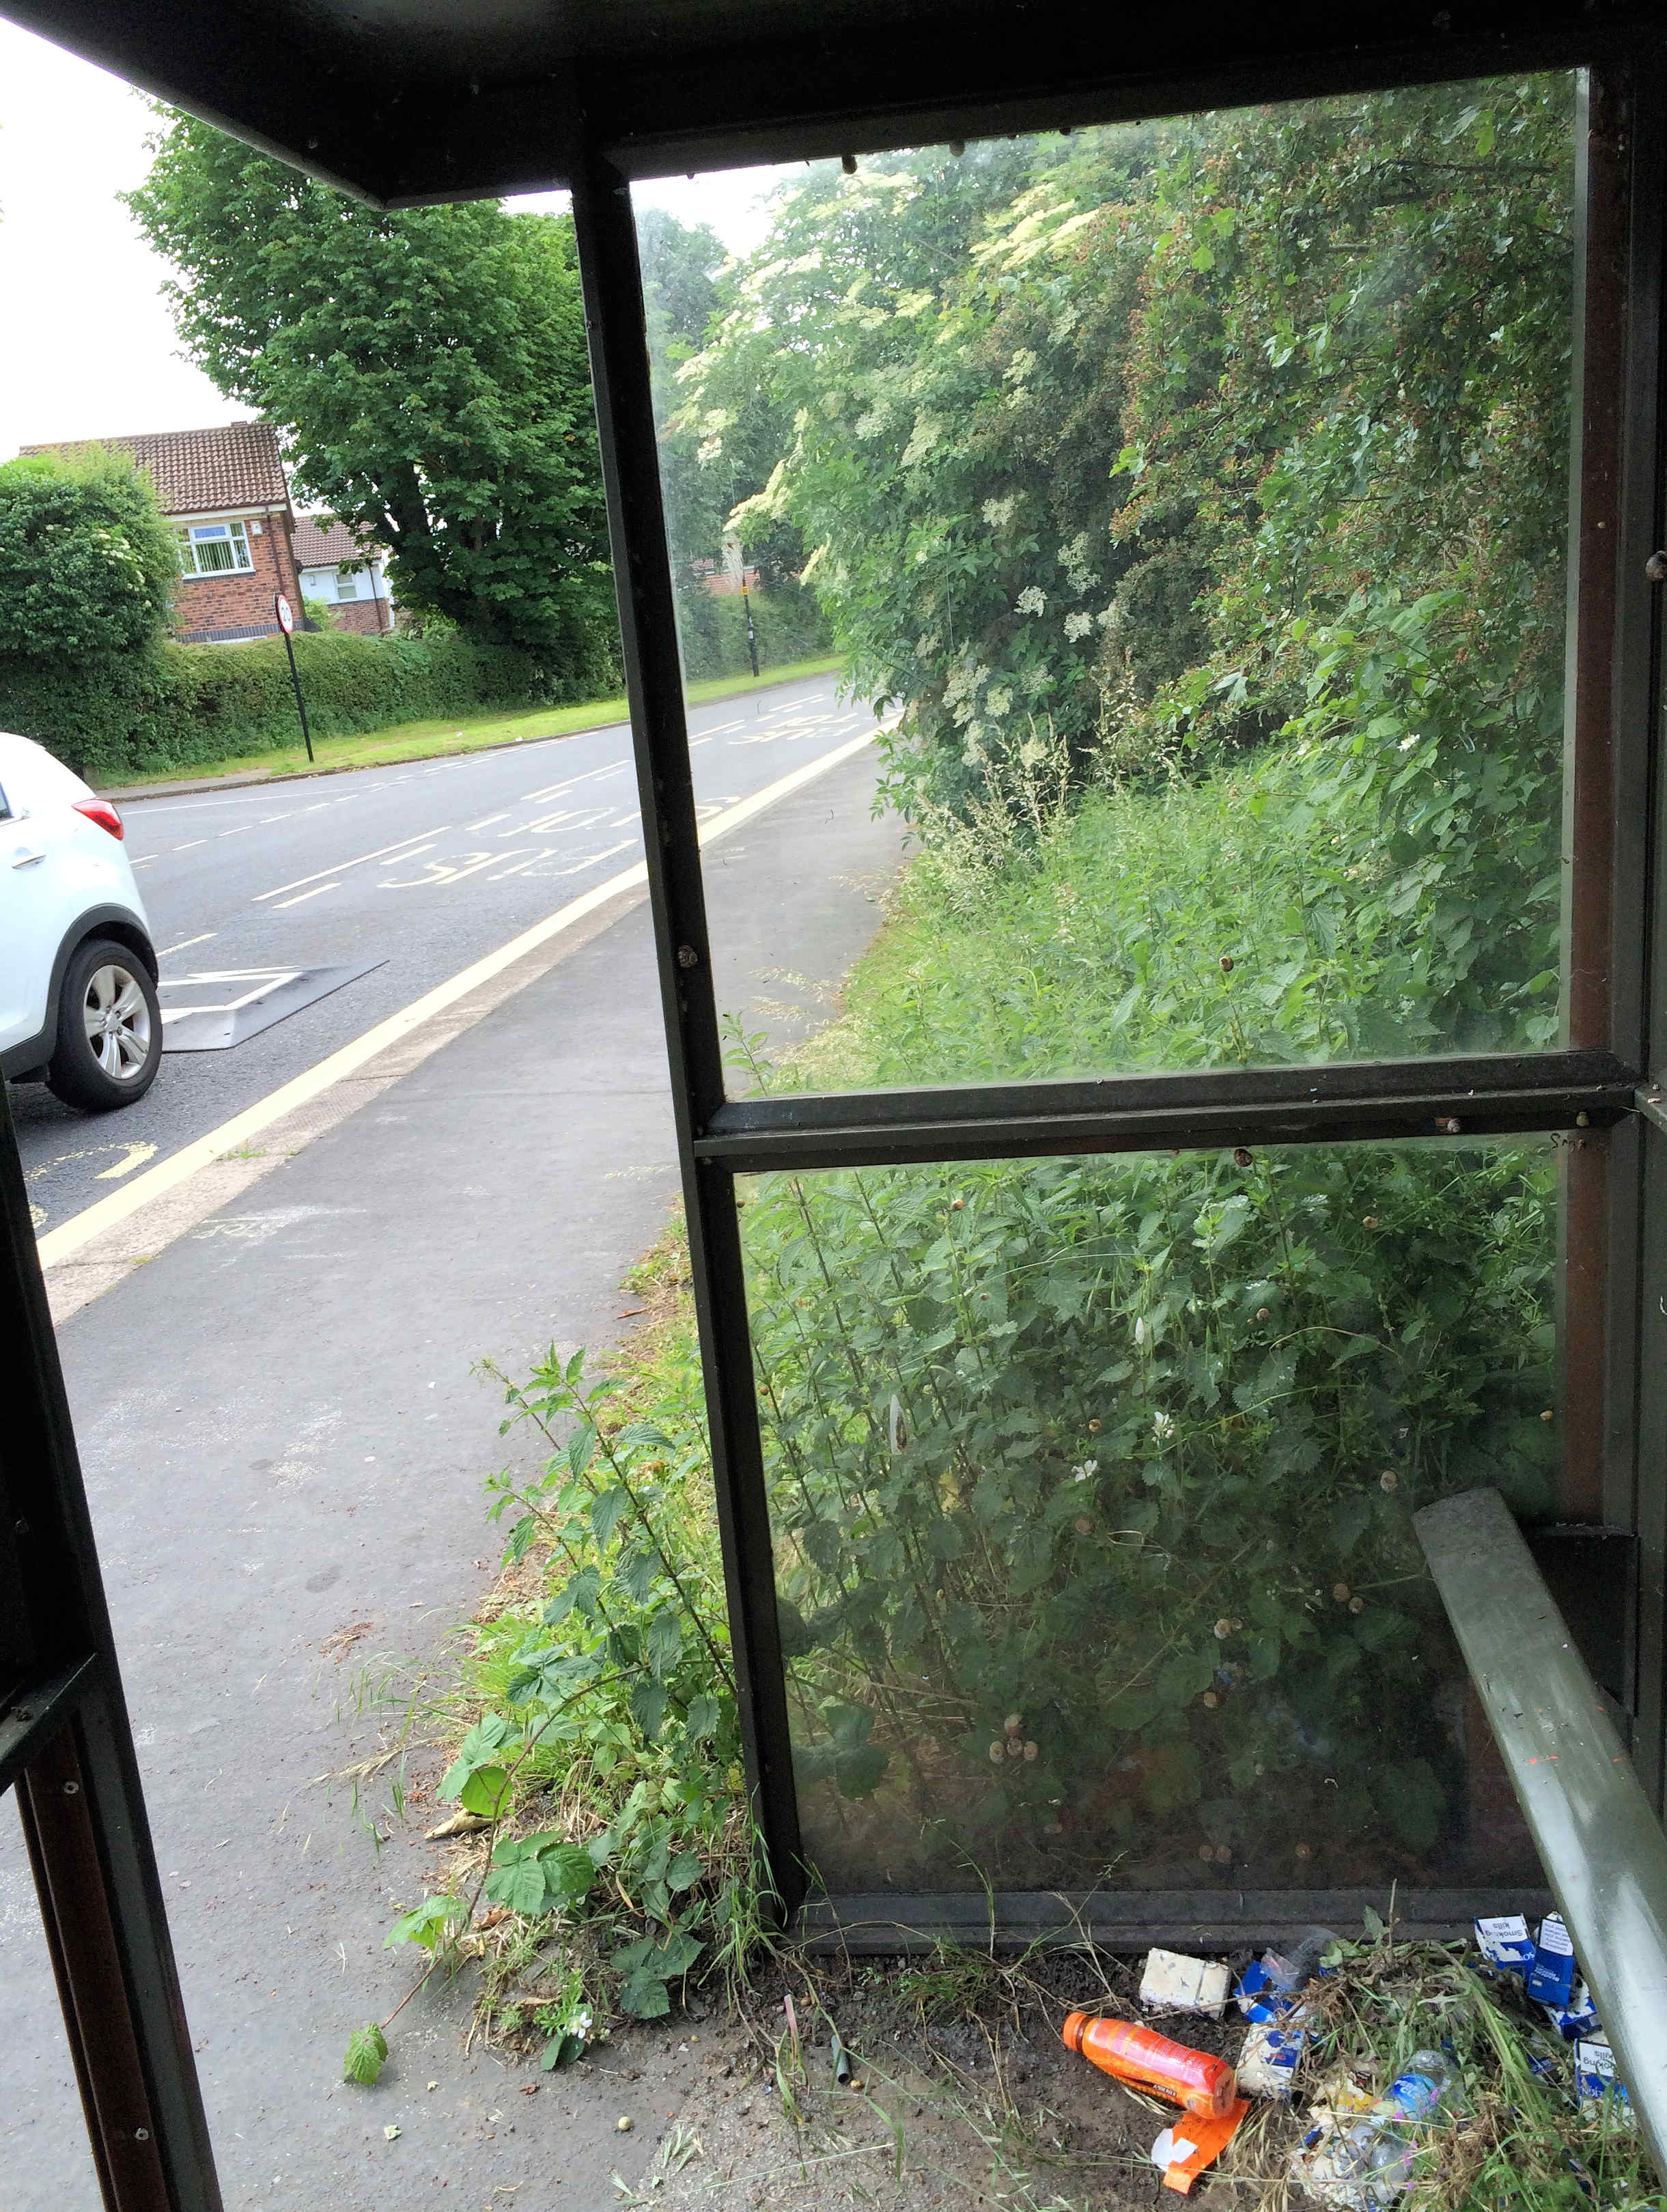 View from Askham Lane bus shelter. Reported two months ago the shelter is still engulfed by nettles and rubbish. It is impossible to see approaching busses from within the shelter.